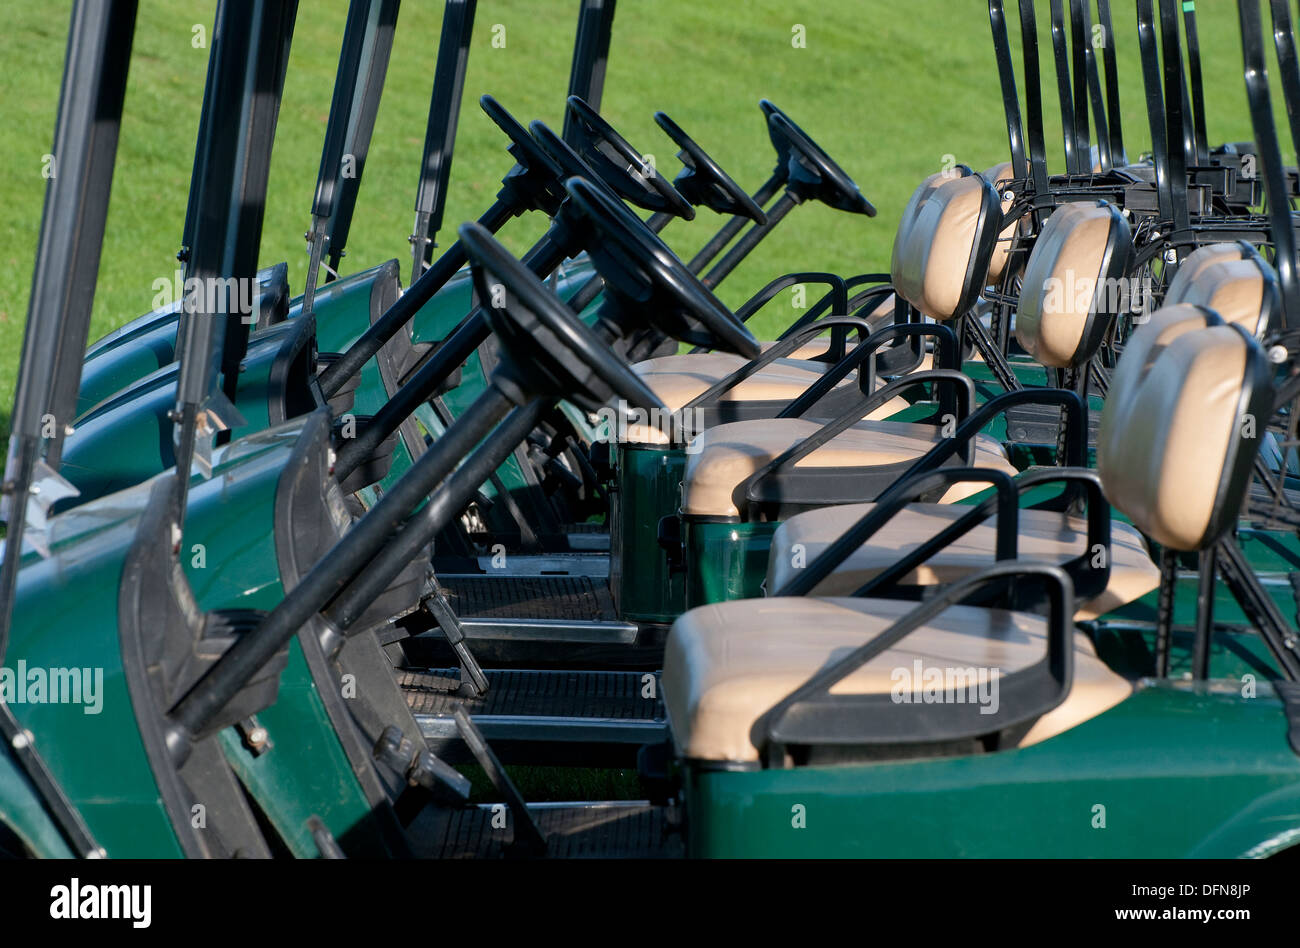 row of parked golf carts - Stock Image